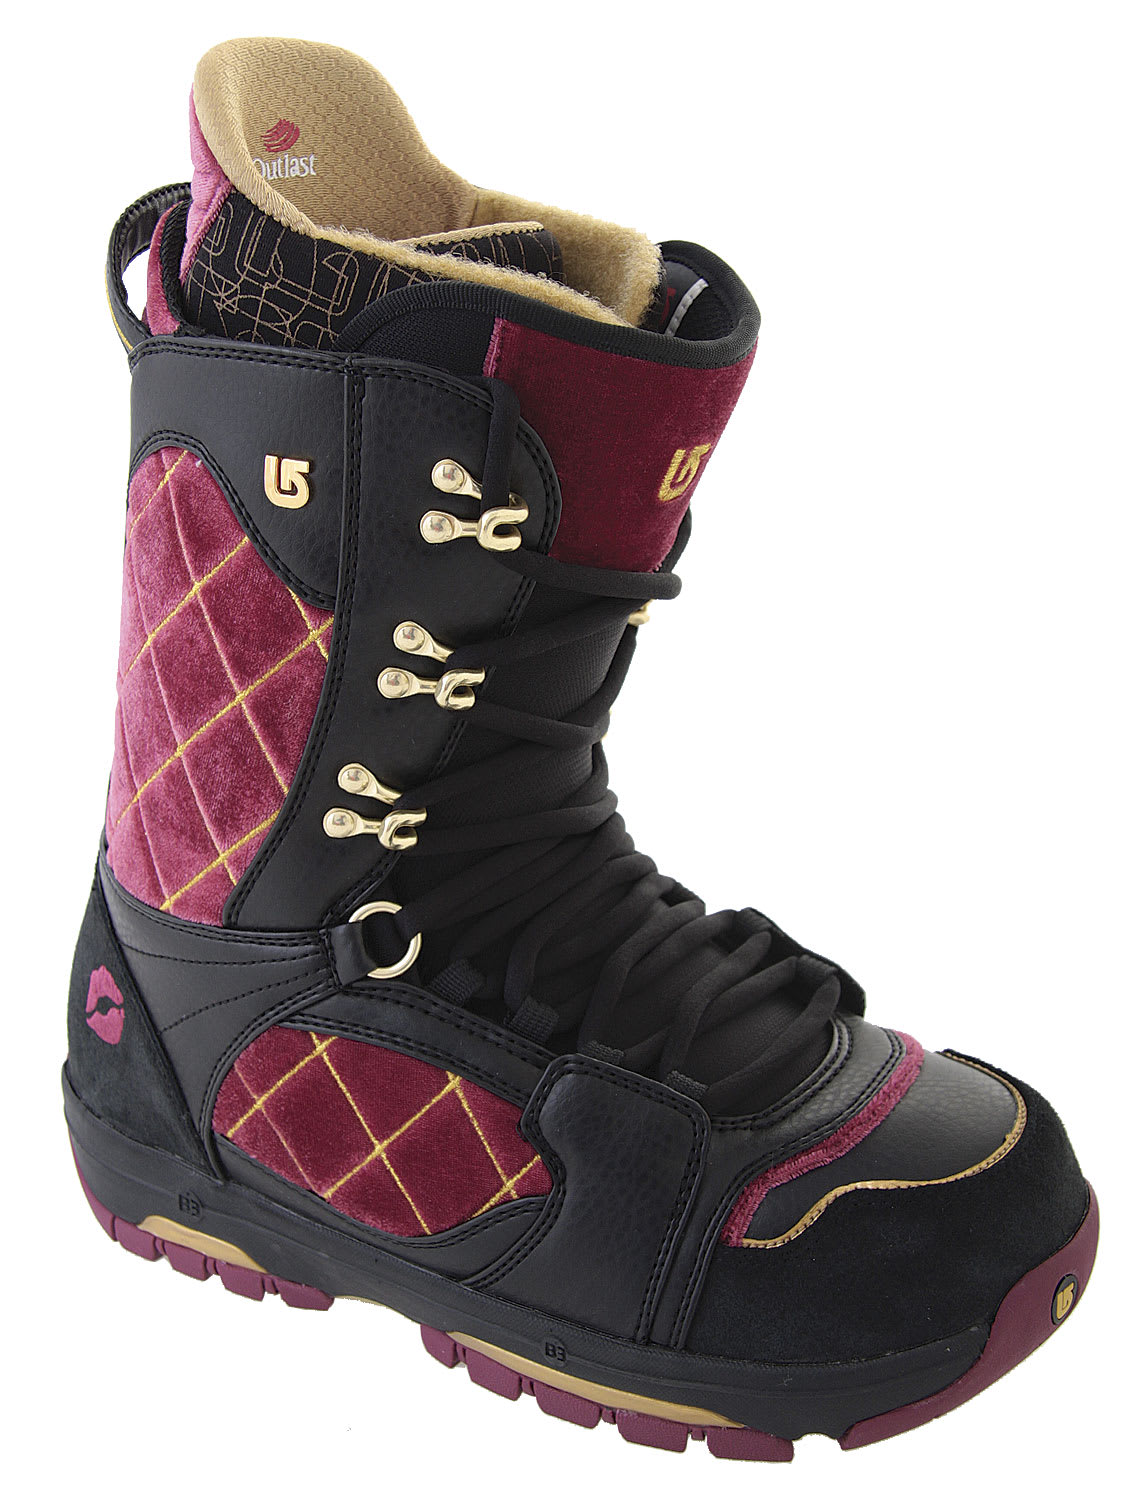 Shop for Burton Sabbath Snowboard Boots Black/Crushed Velvet - Kid's